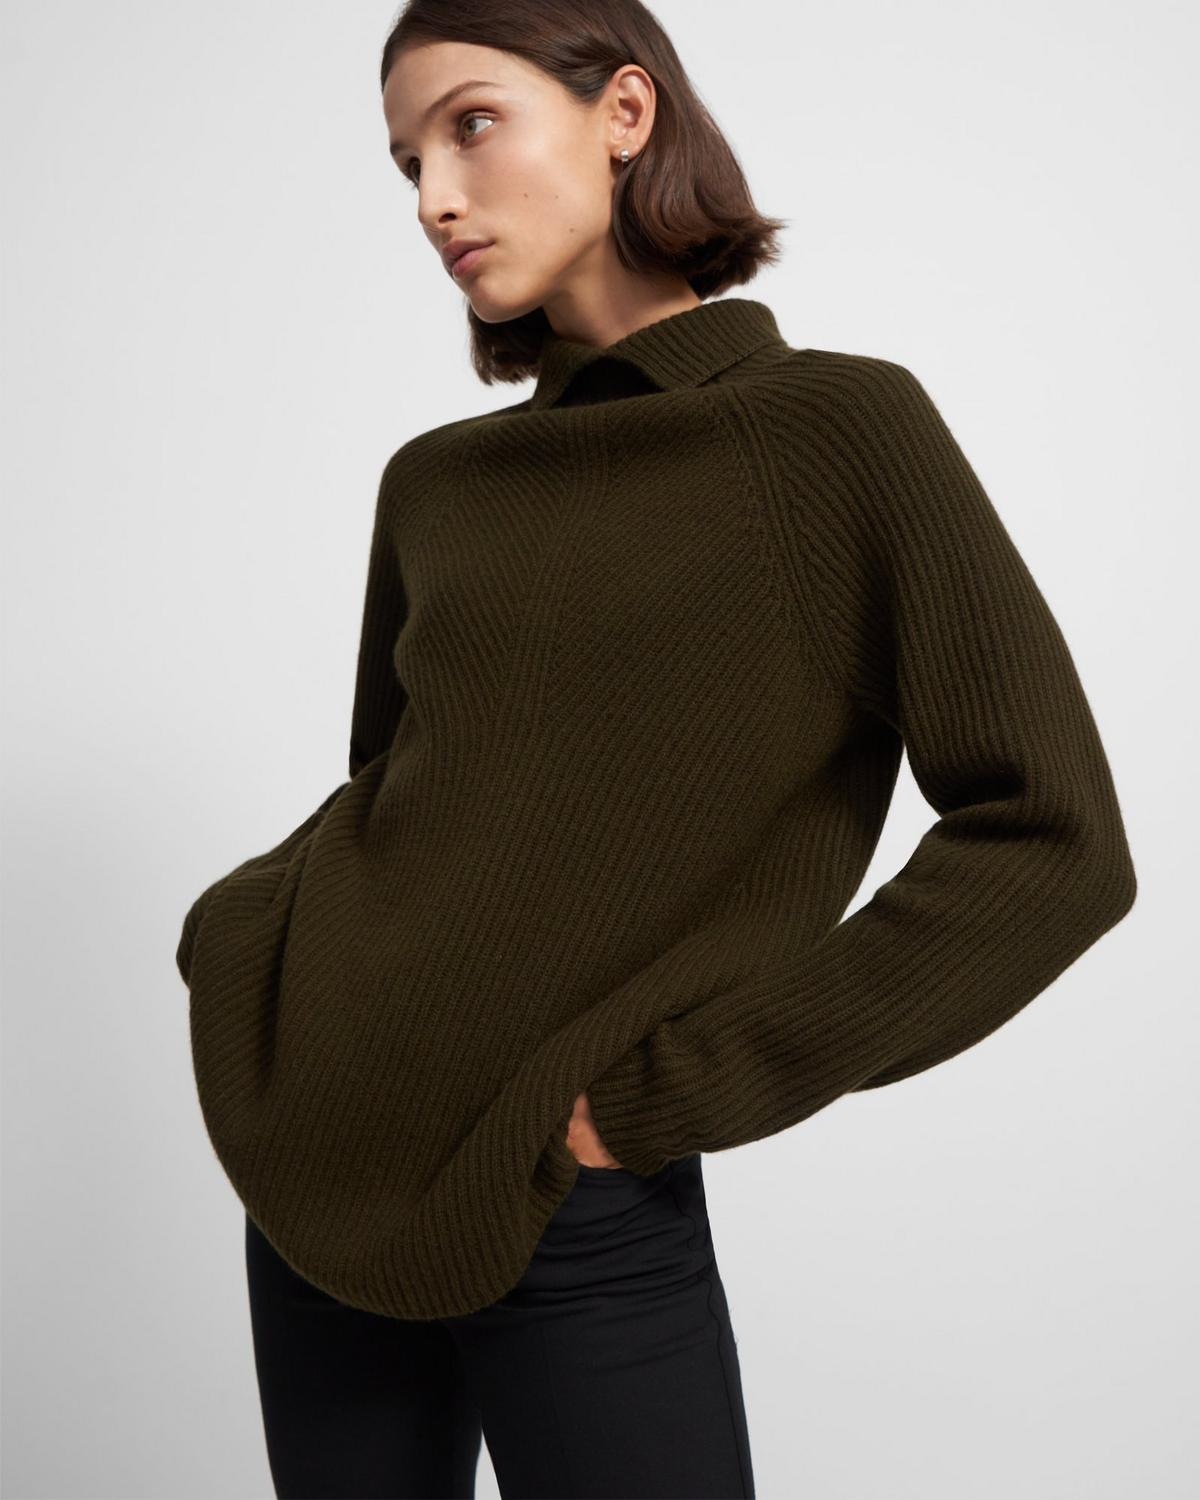 Moving Rib Turtleneck Sweater in Cashmere